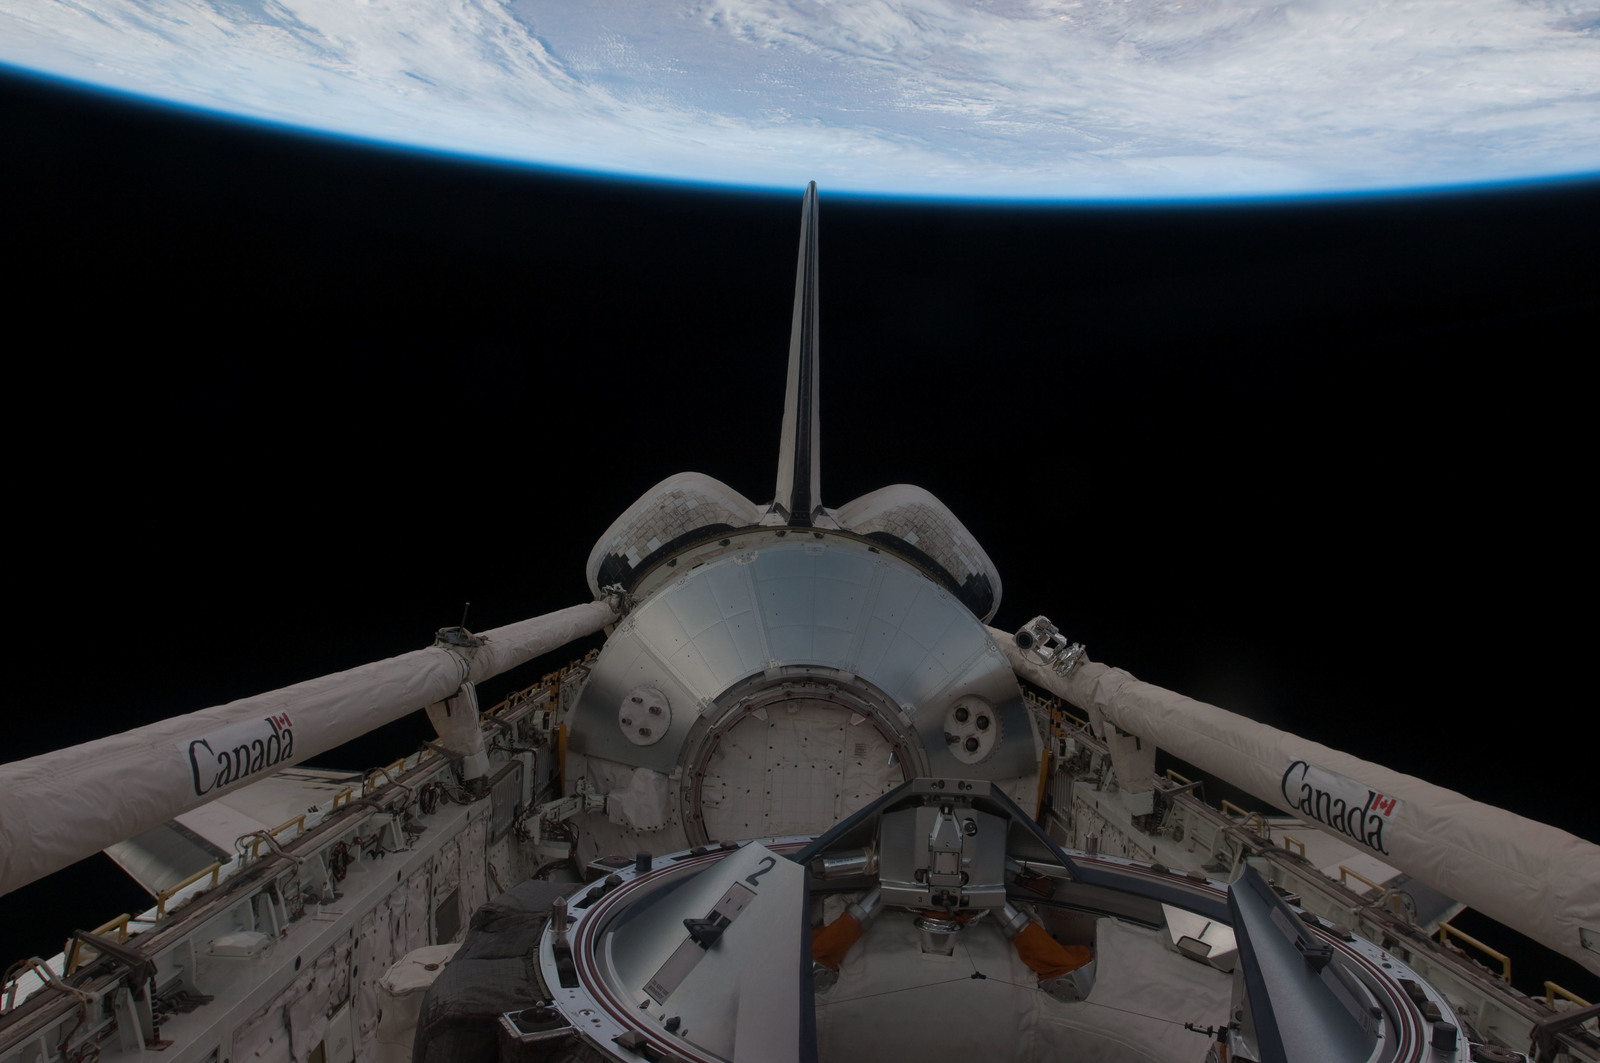 S126E026988 - STS-126 - Payload Bay of Endeavour